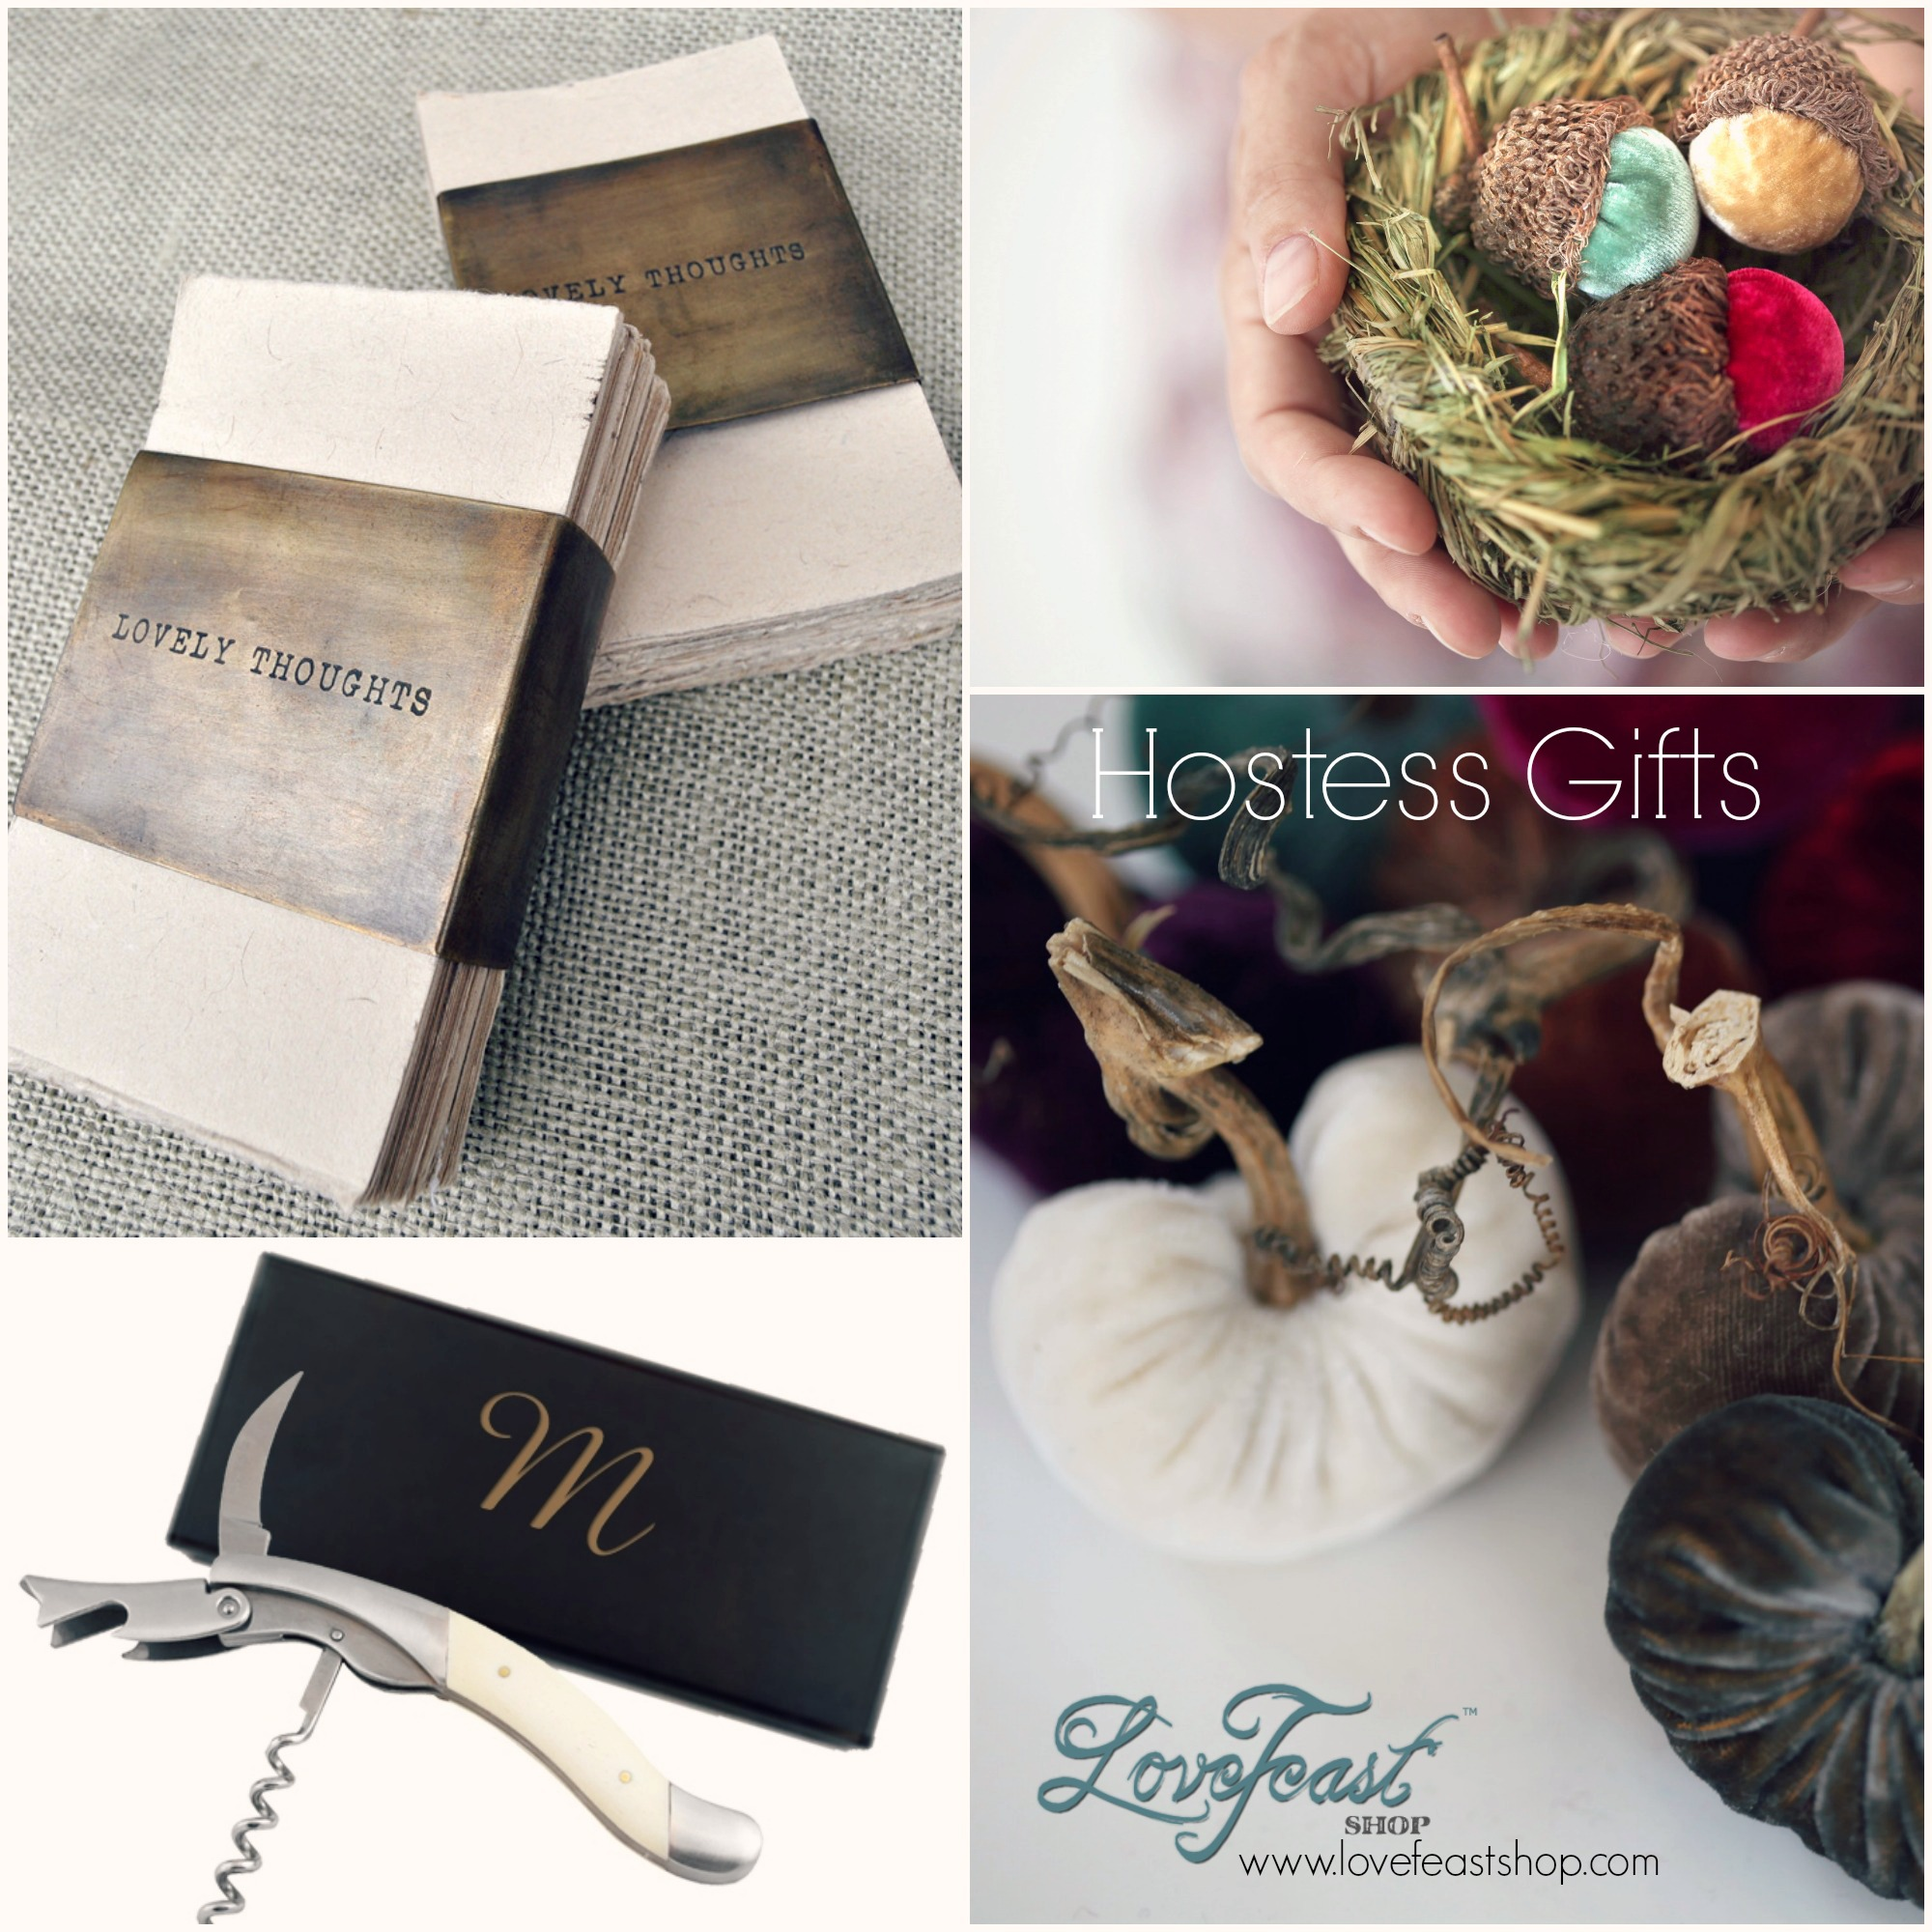 Home Decor Hostess Gifts: Cyber Monday ~ Home Decor & Gifts